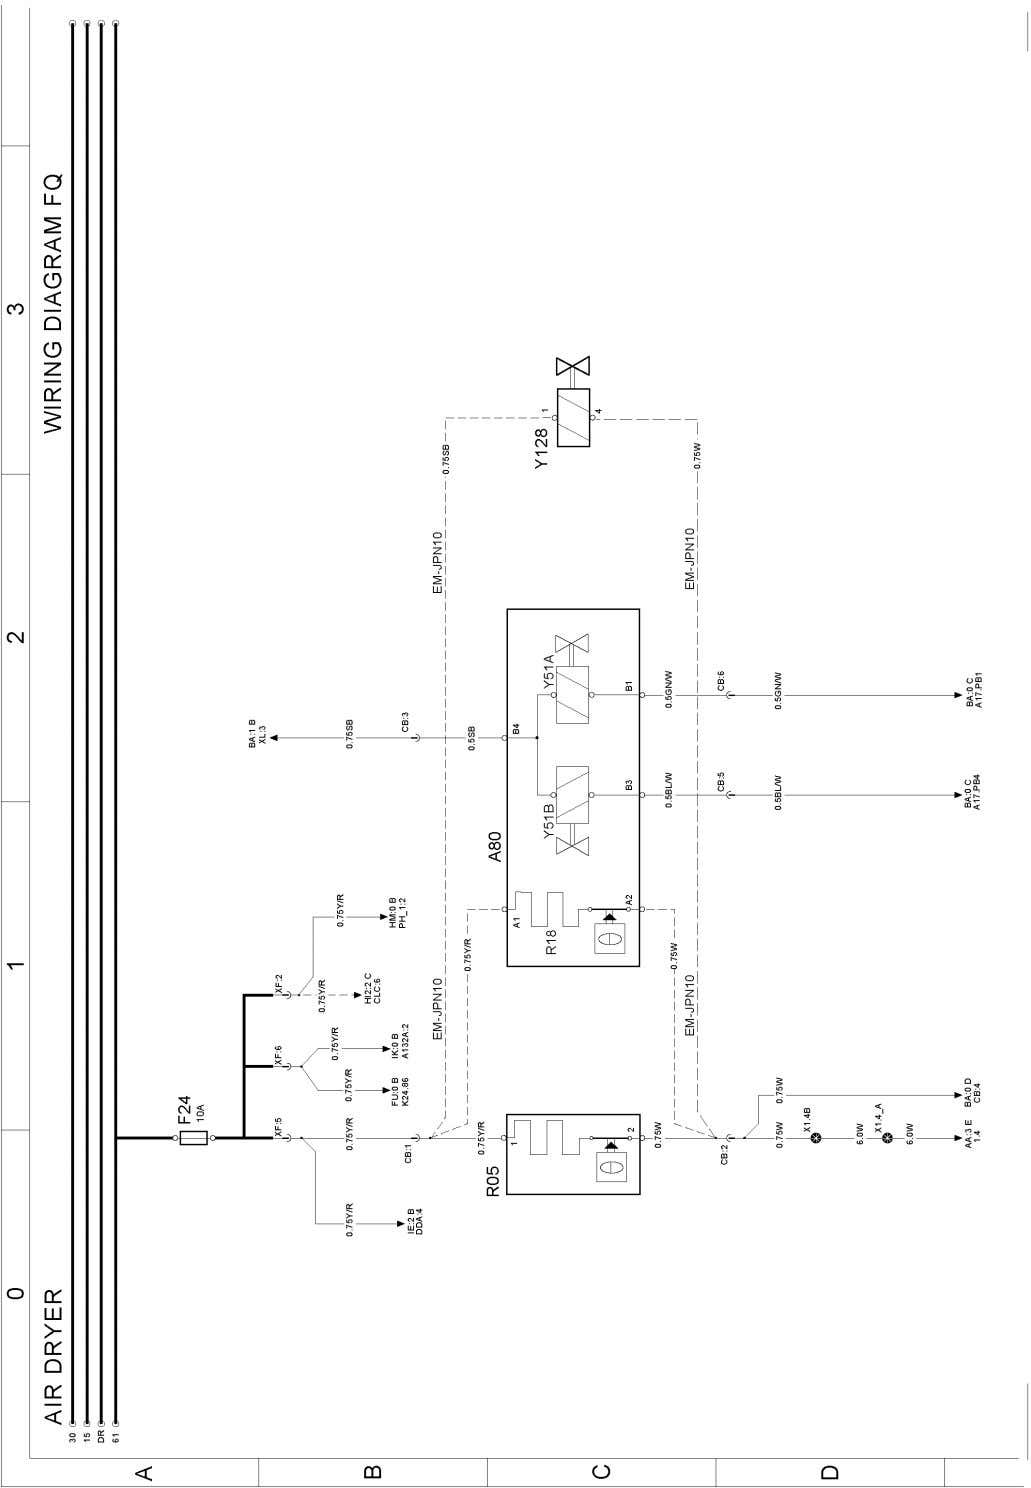 T3057493 Wiring diagram Page 57 (298)